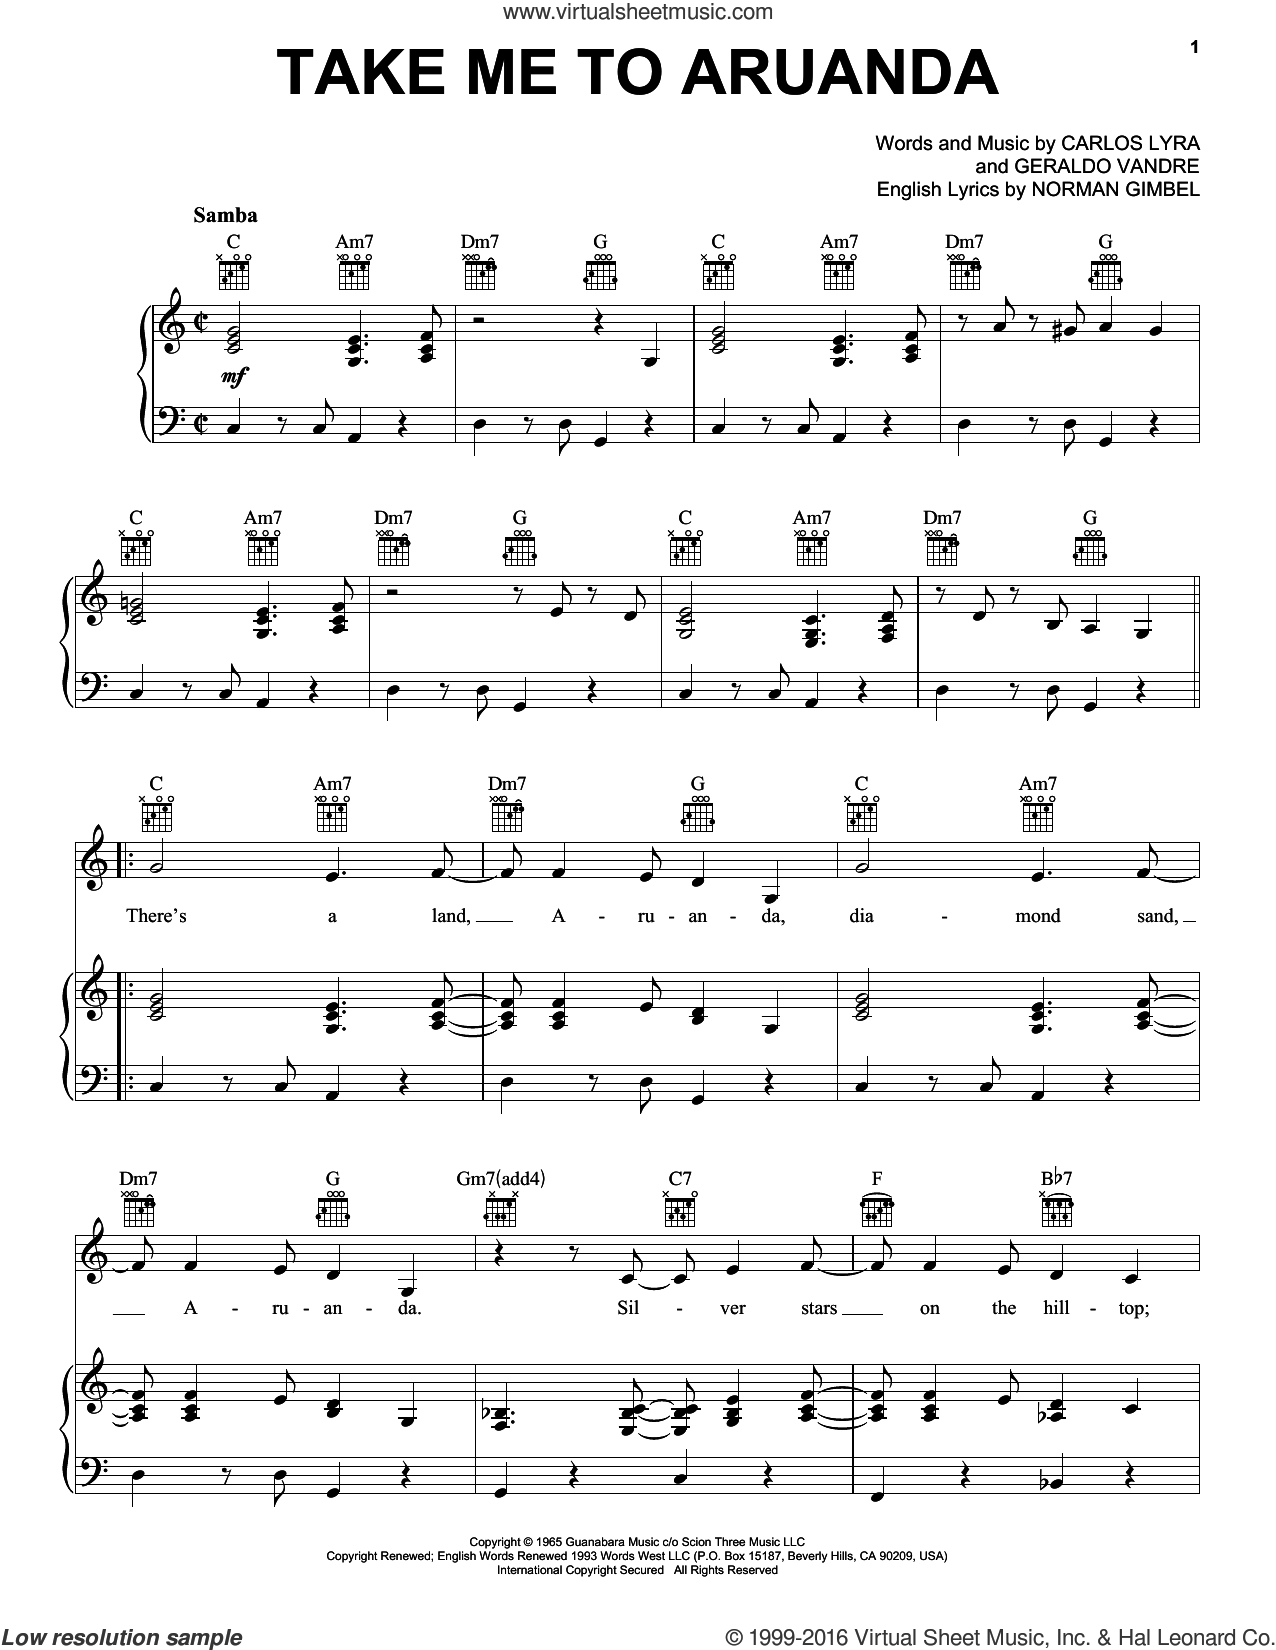 Take Me To Aruanda sheet music for voice, piano or guitar by Astrud Gilberto, Carlos Lyra, Geraldo Vandre and Norman Gimbel, intermediate skill level